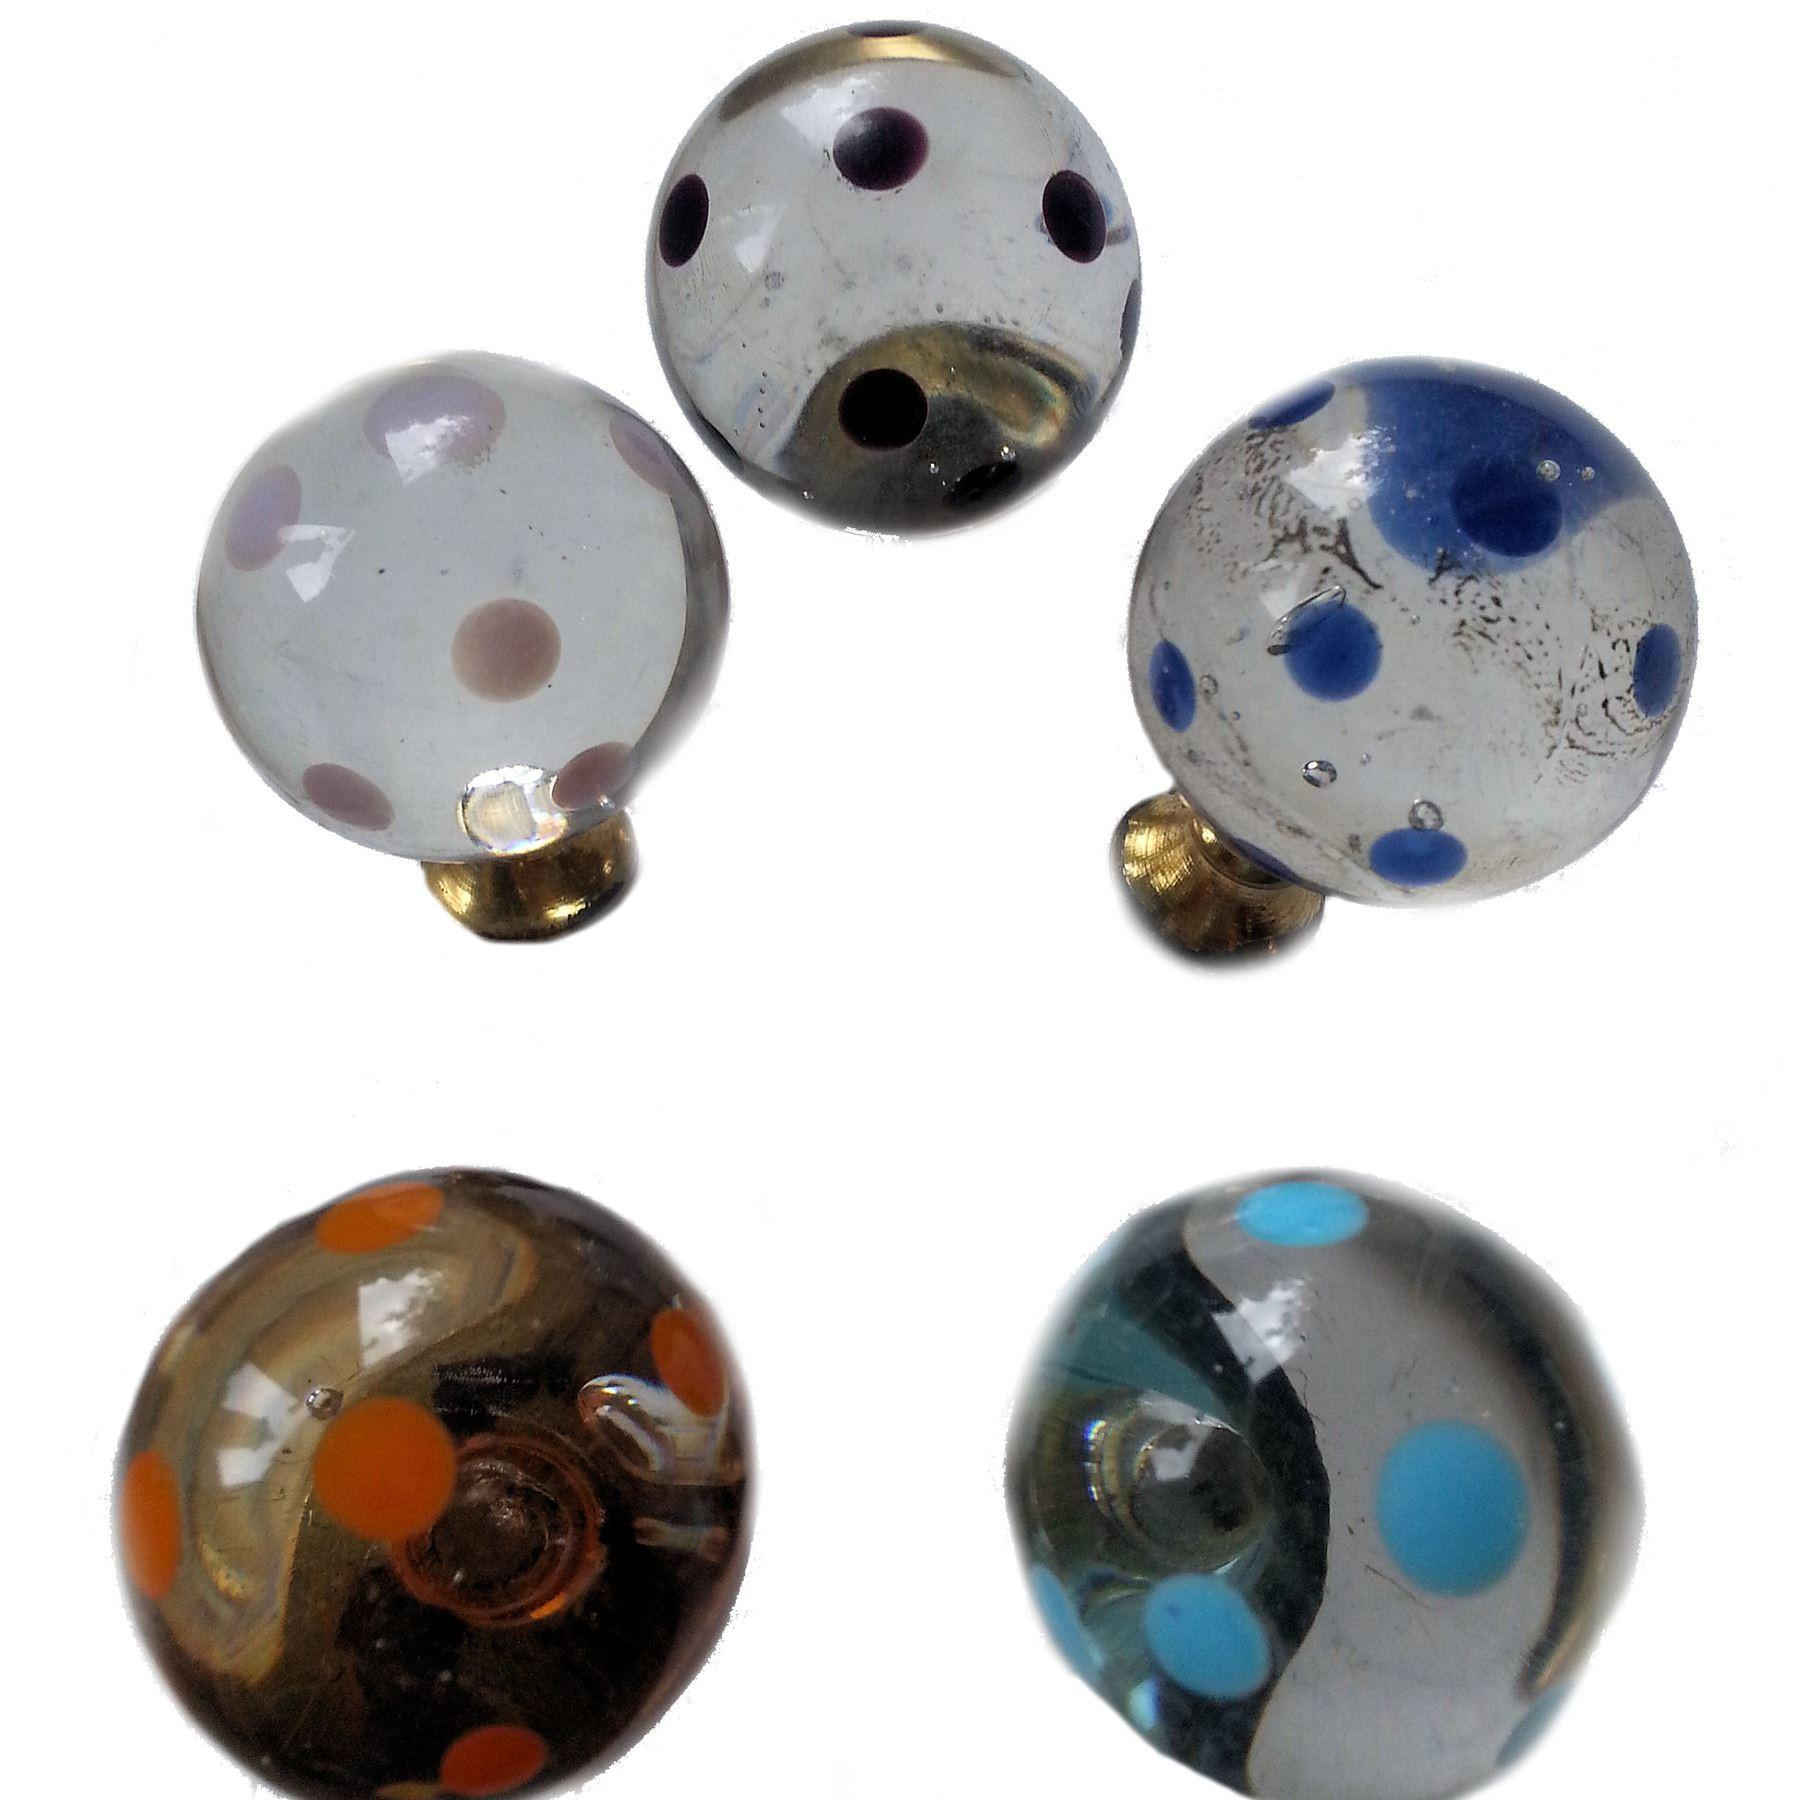 Polka Dot Glass Knobs Small Round Drawer Pulls Painted